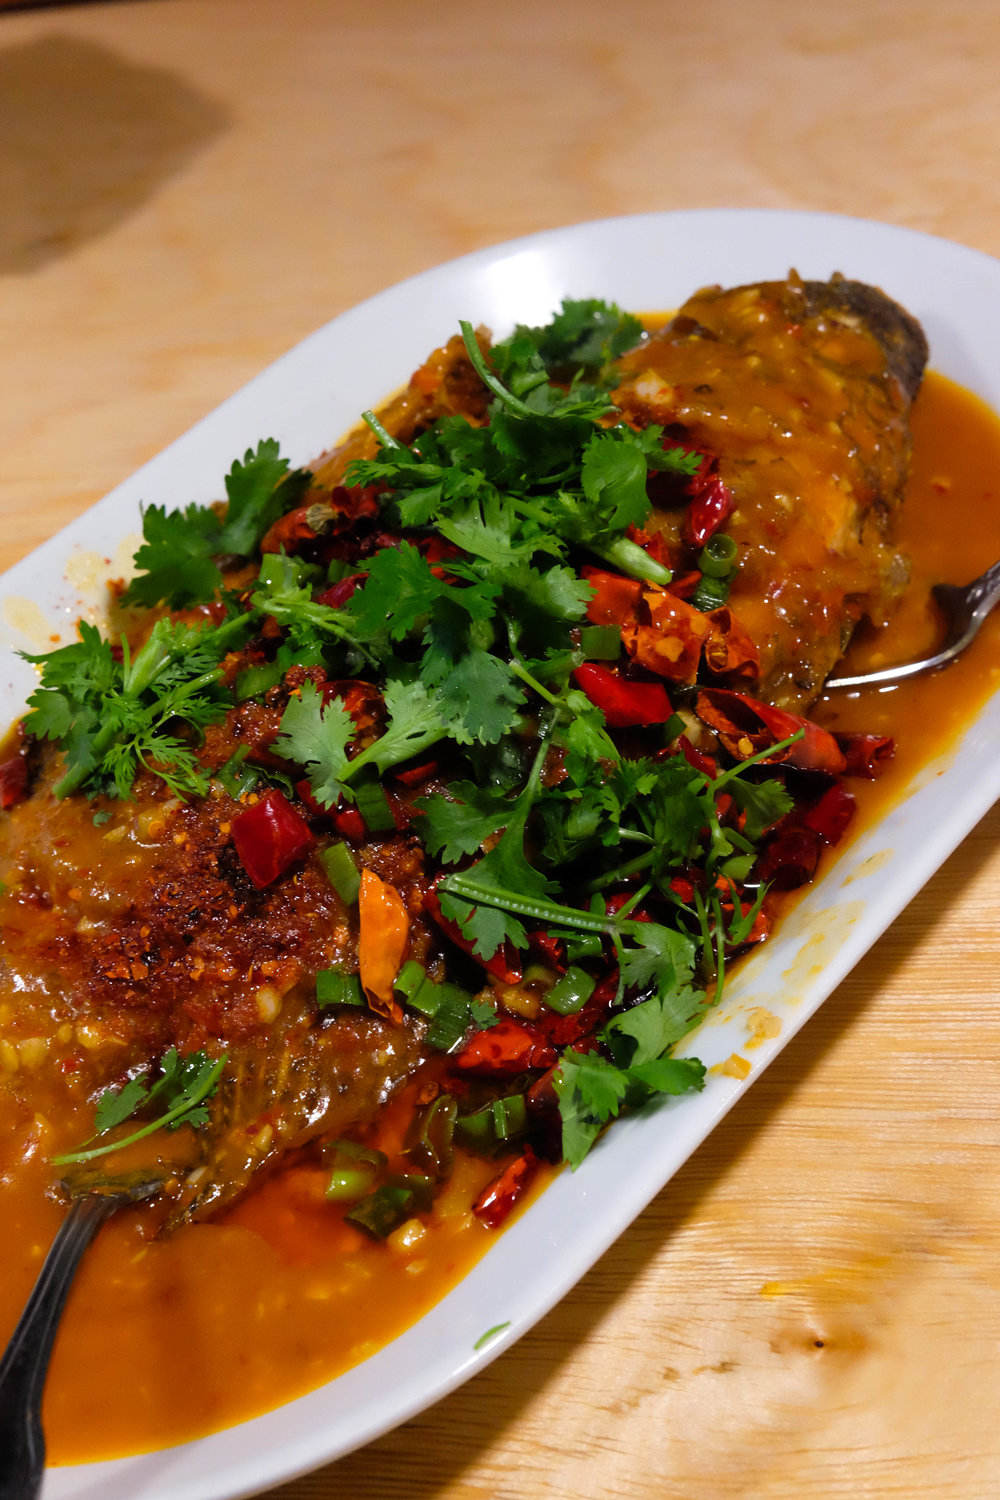 braised whole fish in chili oil